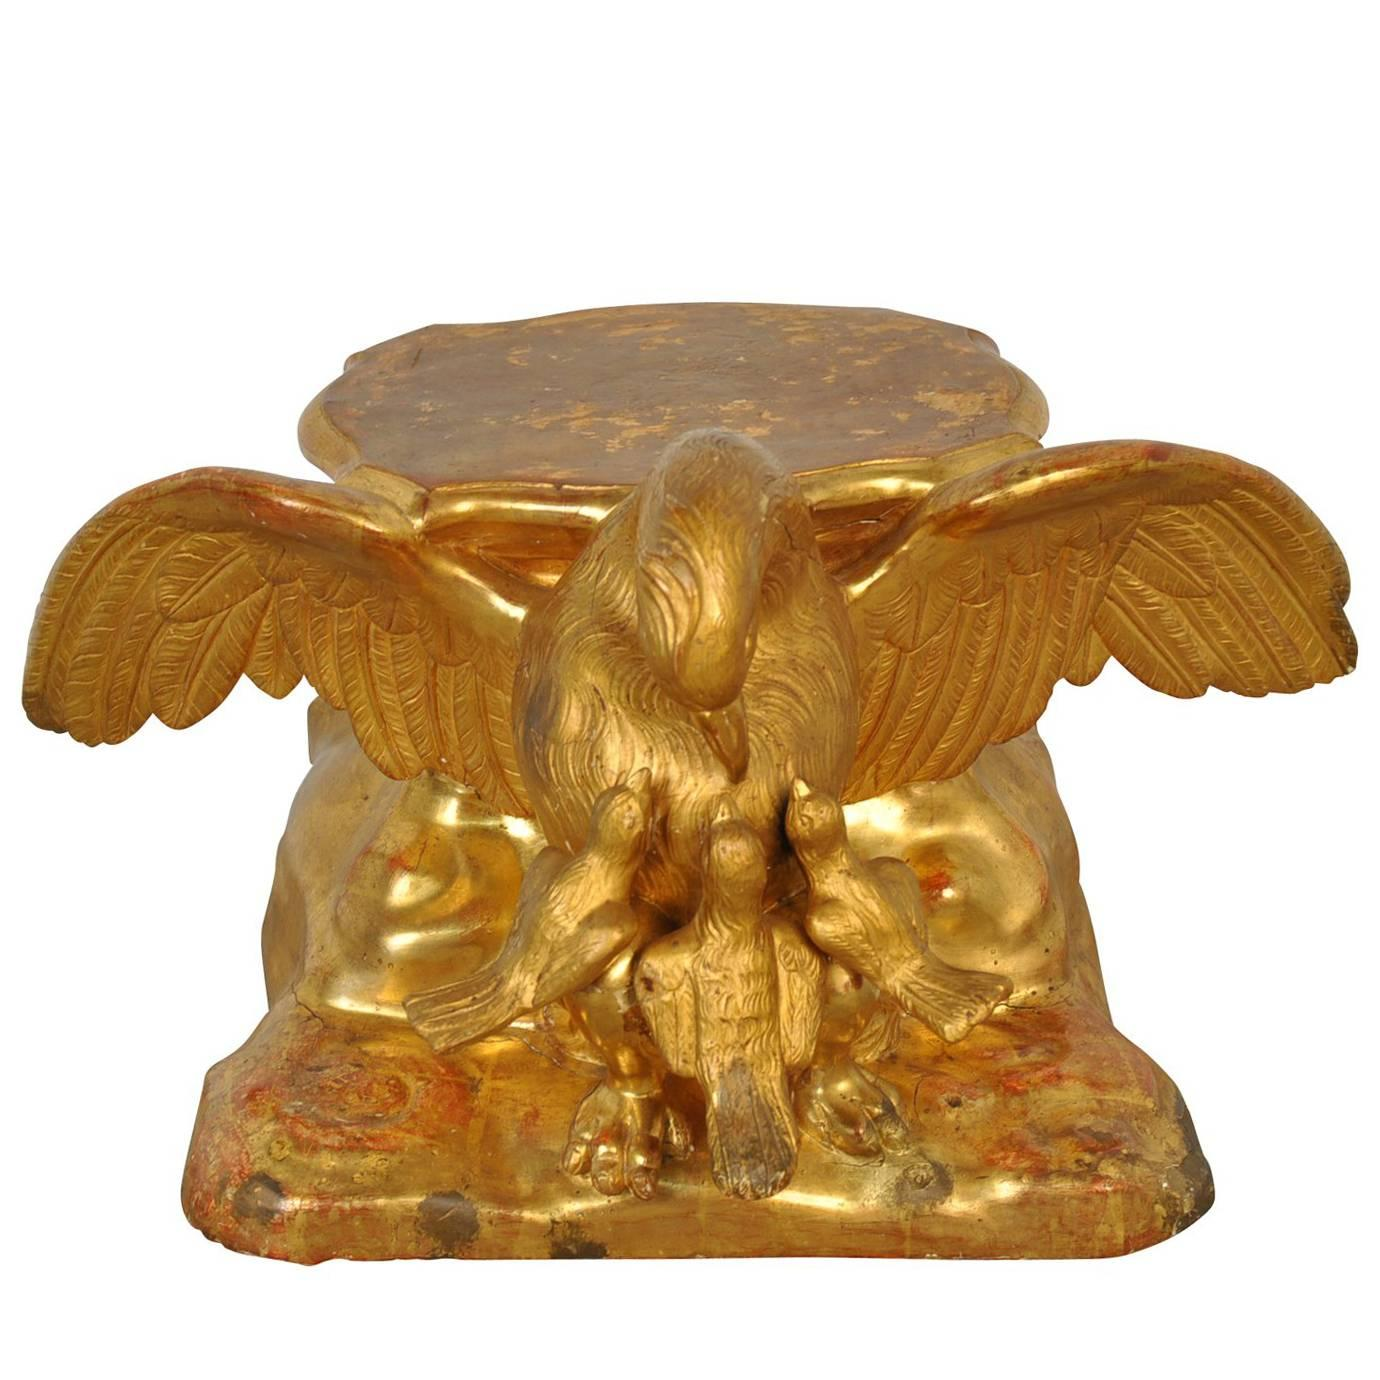 Italian 18th Century Tabletop Stand or Pedestal